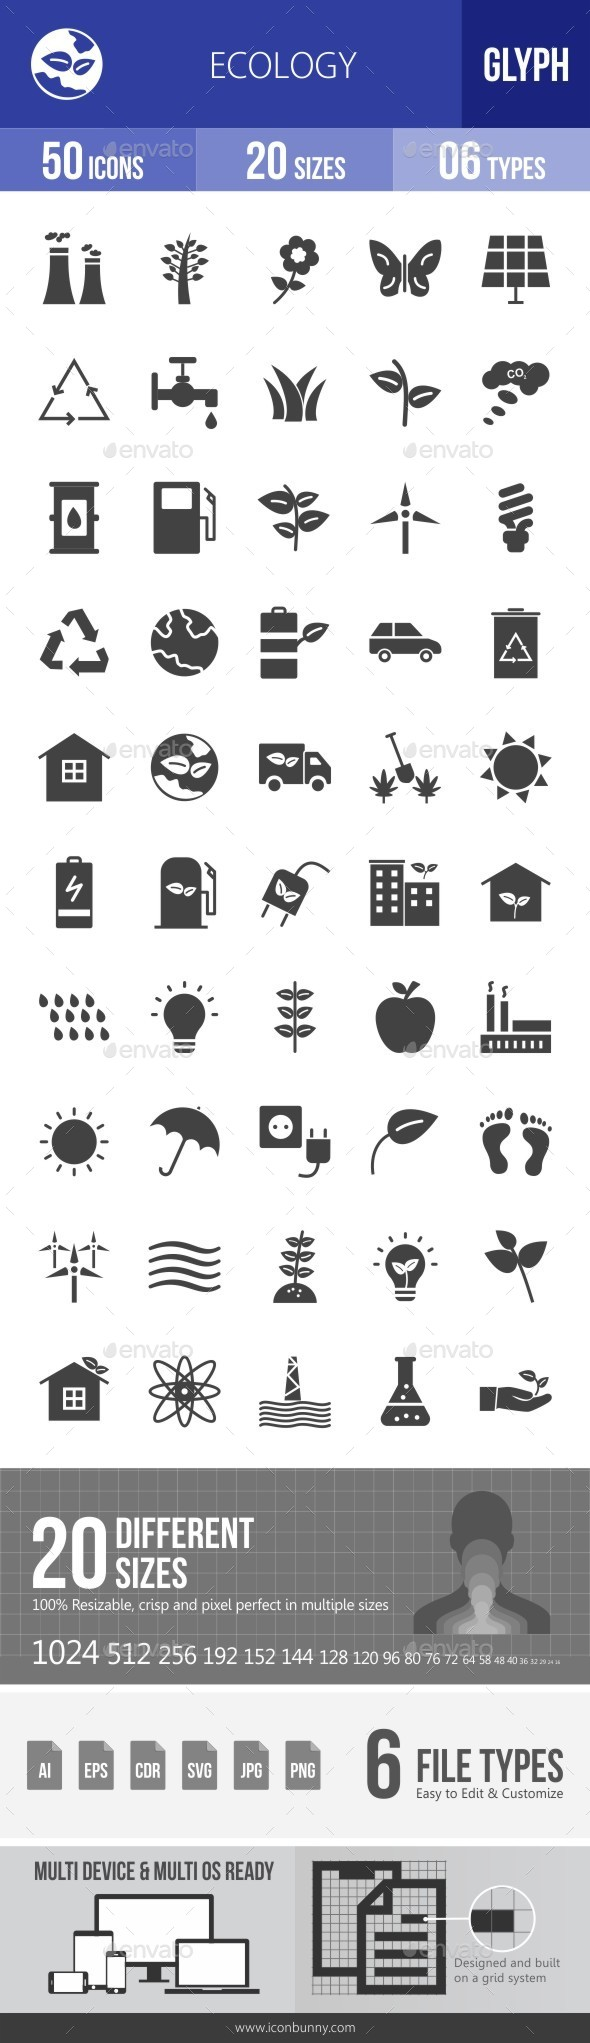 Ecology Glyph Icons - Icons